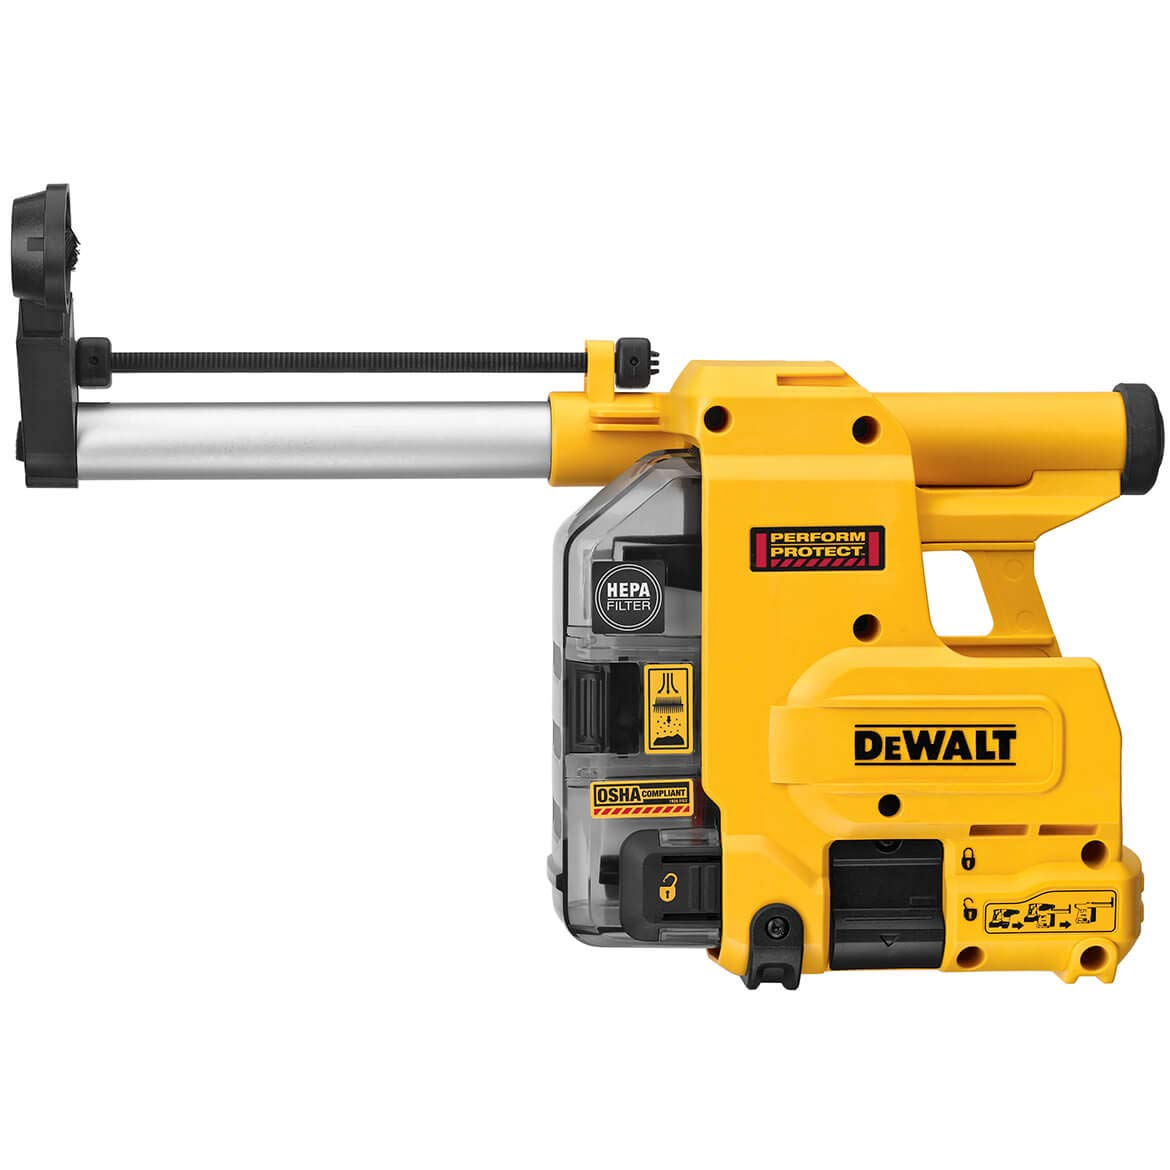 """DEWALT DWH304DH Onboard Dust Extractor for 1-1/8"""" SDS Plus Hammers"""